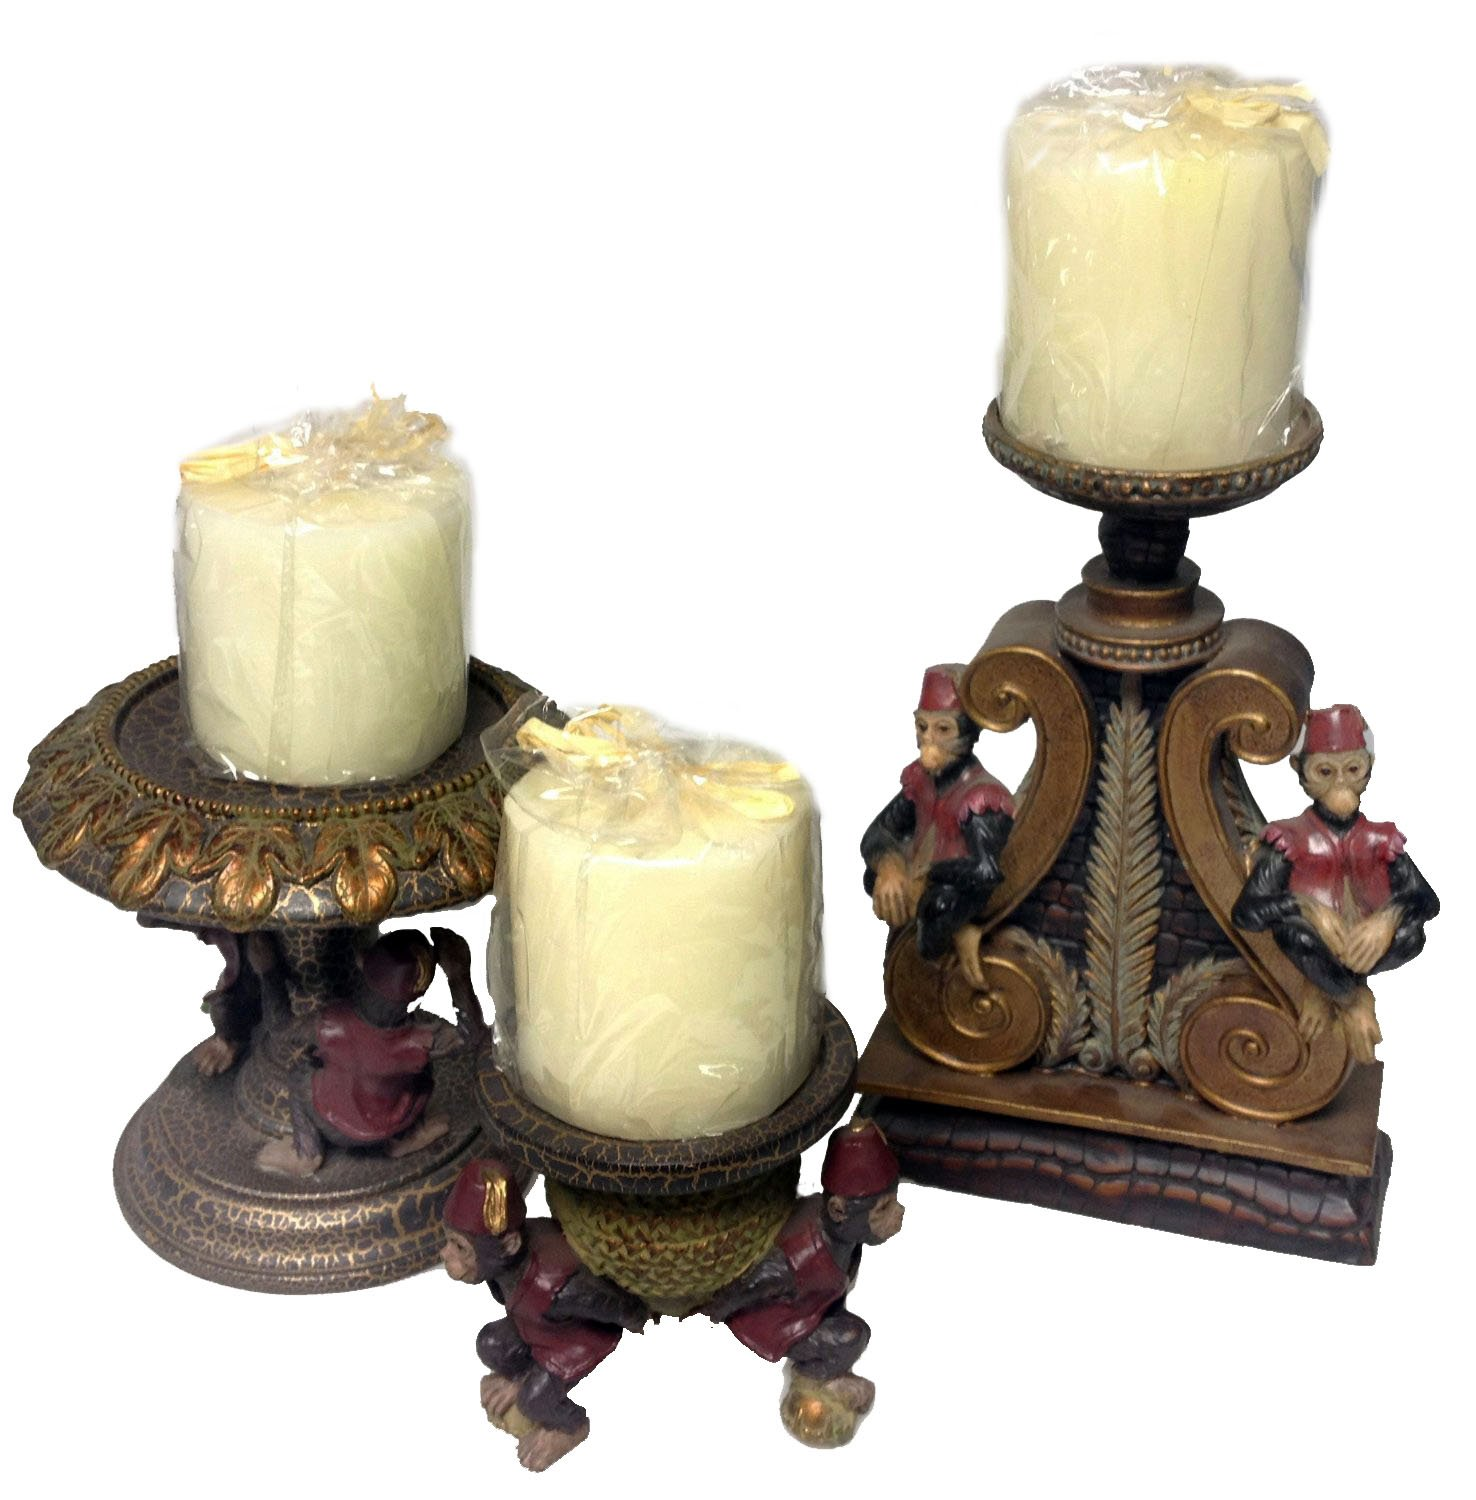 Carnival Monkey Candle Holder Set by House of Zog